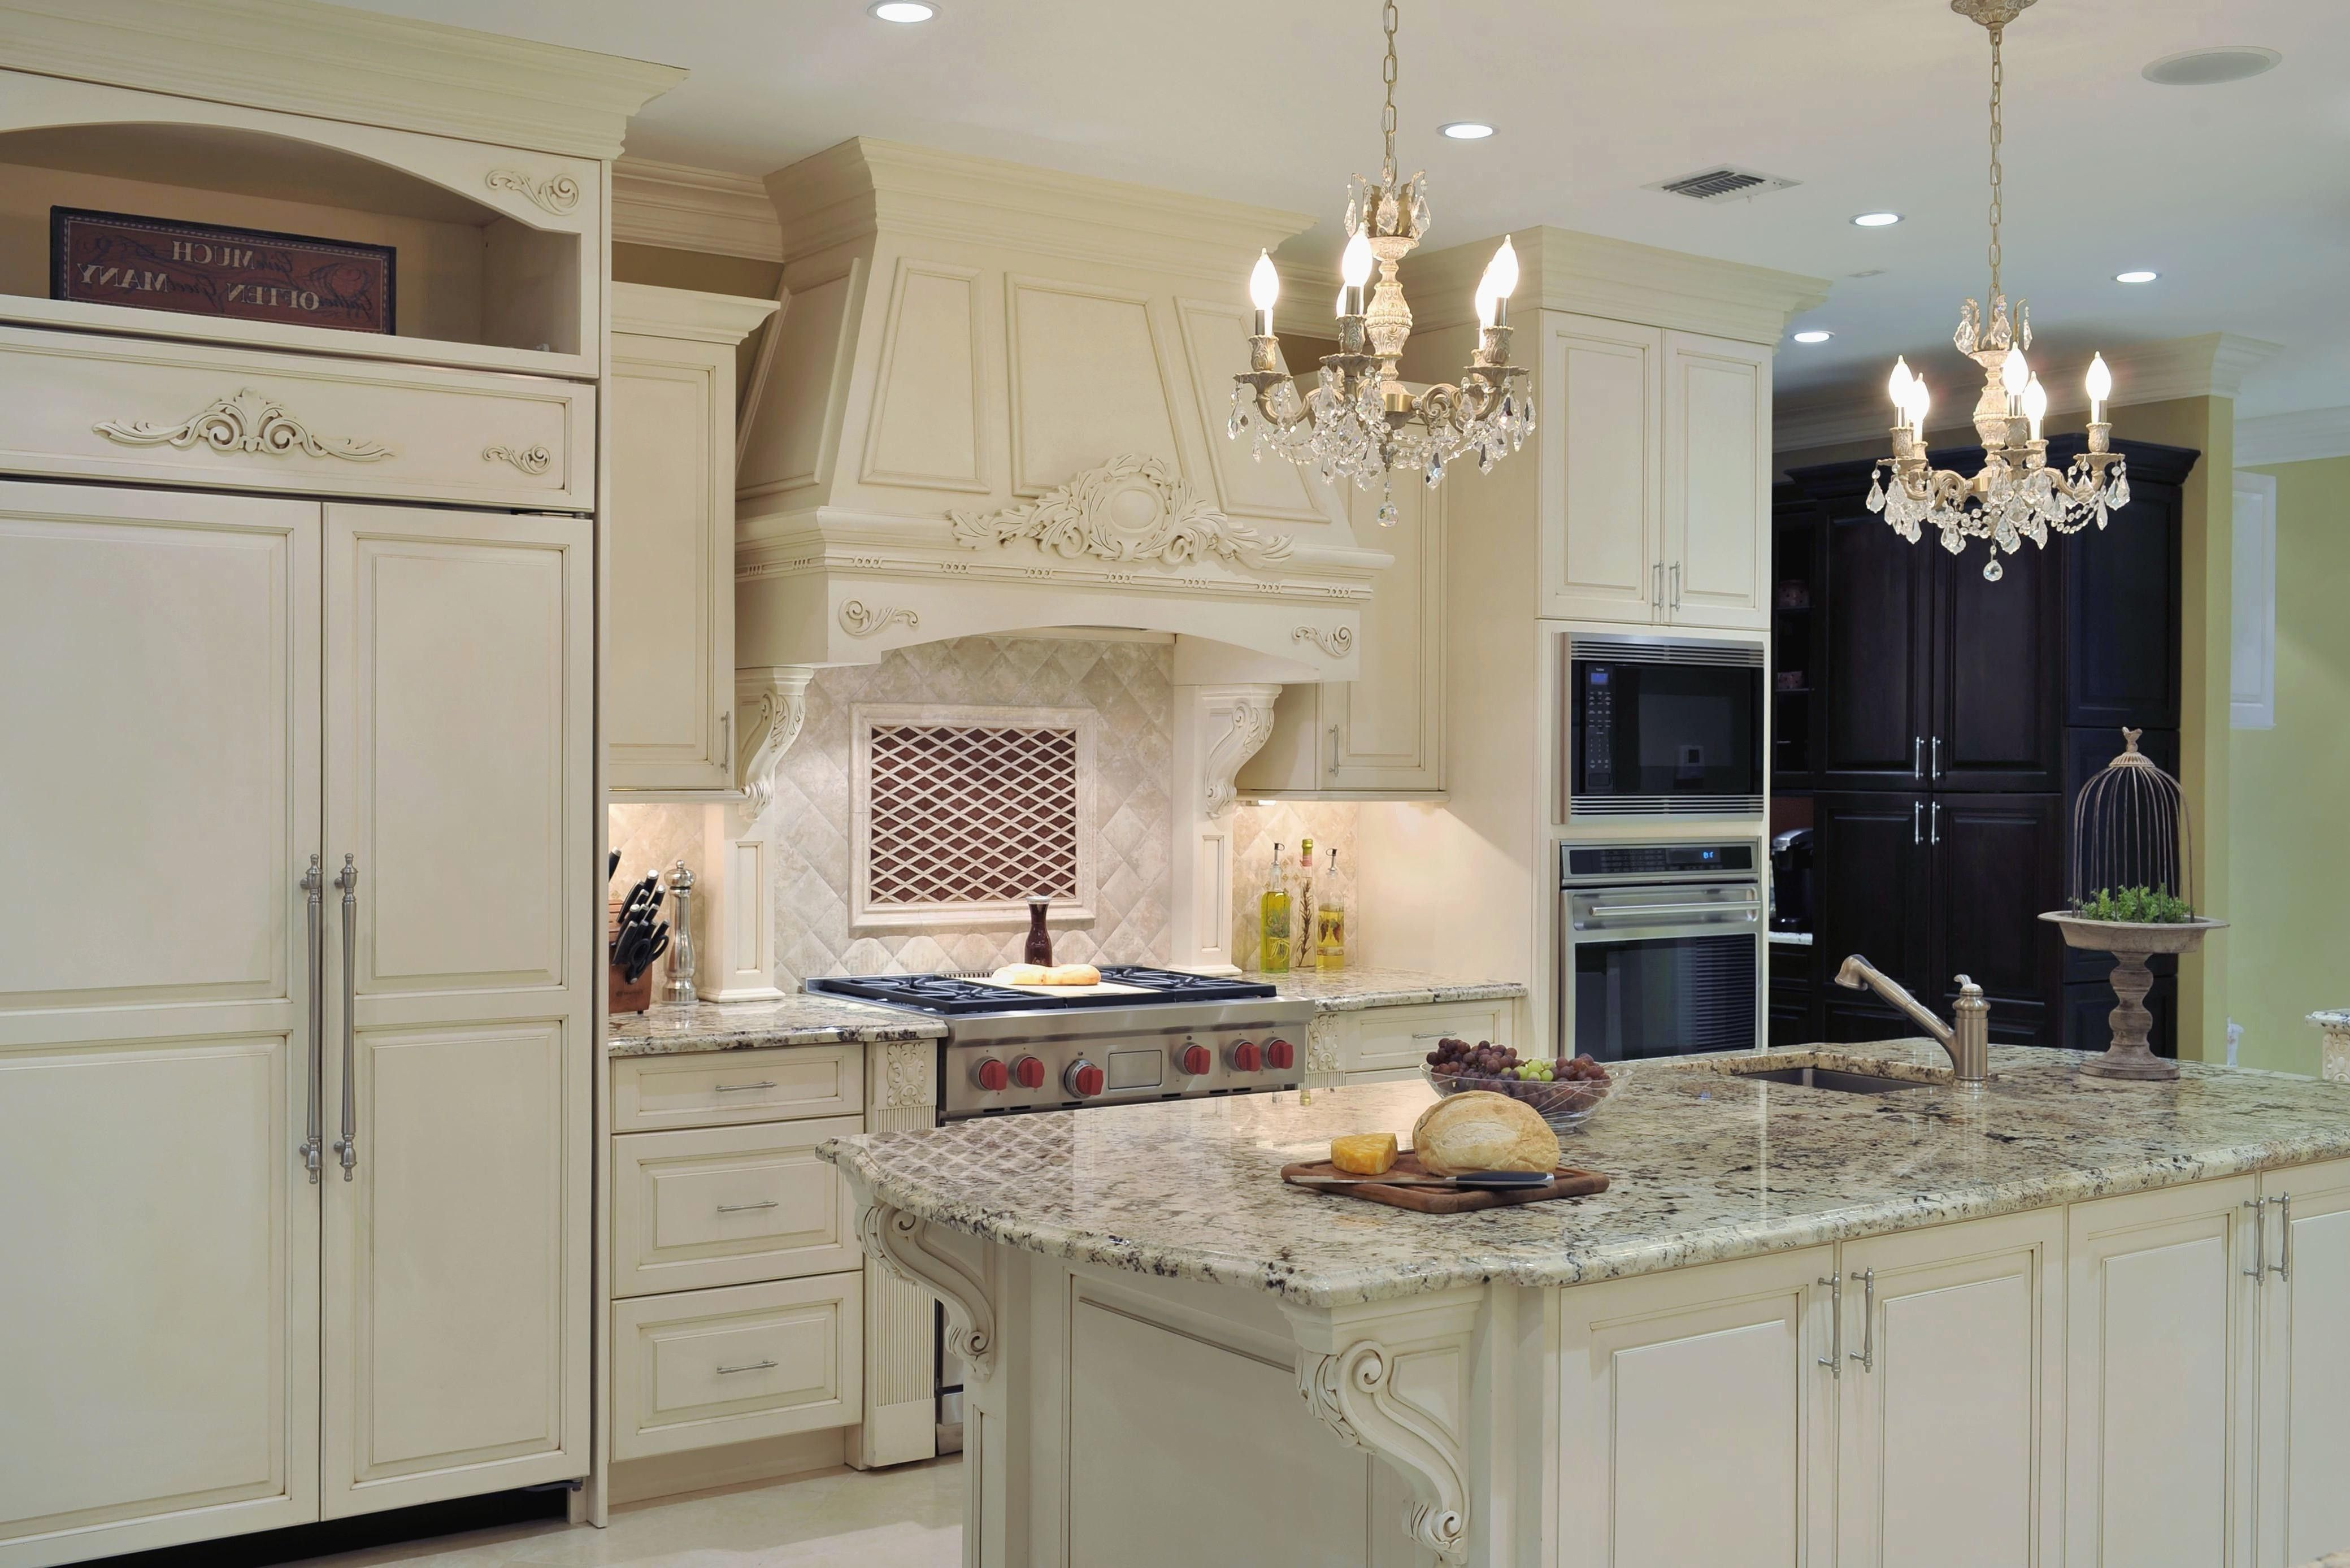 10 Luxury Kitchen Corner Cupboard Interior Fittings Inspiration Kitchen Design Elegant Kitchens Rustic Kitchen Cabinets